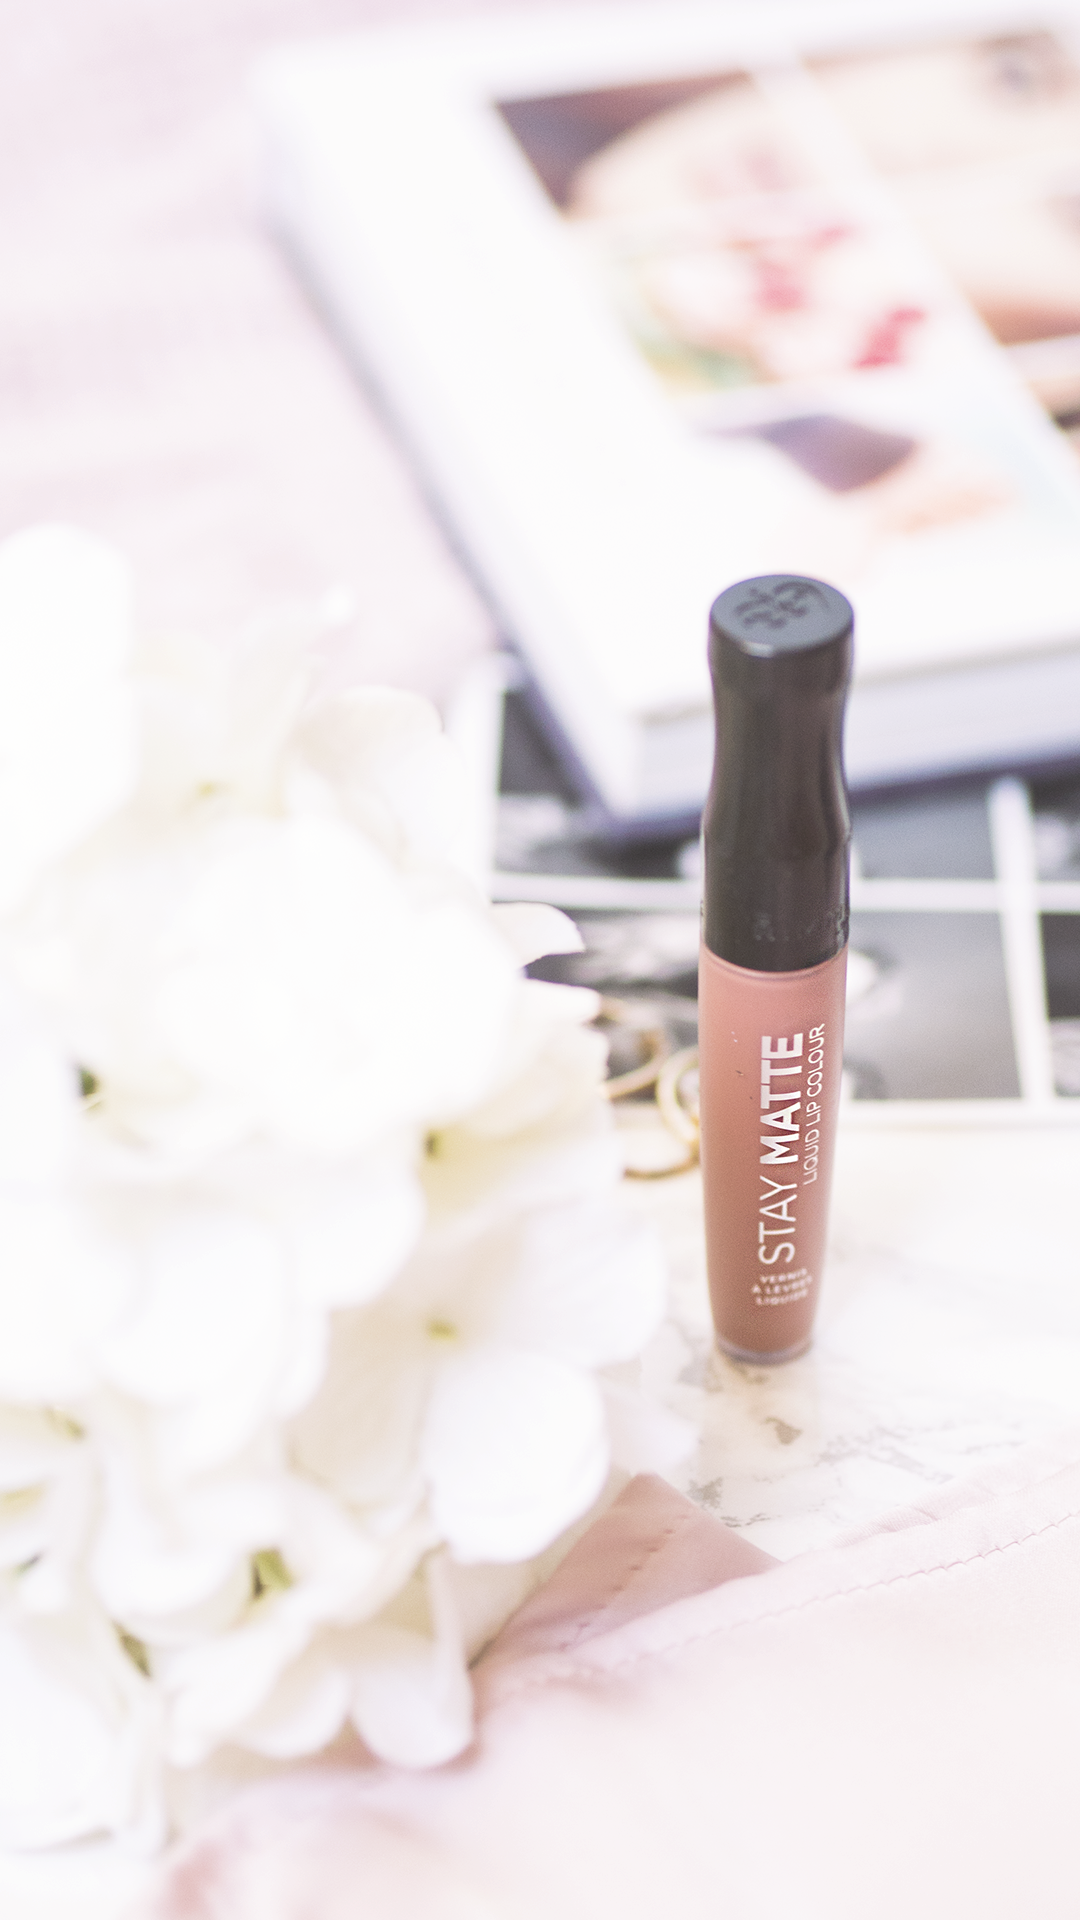 The September Favourites Rimmel Stay Matte Liquid Lipstick